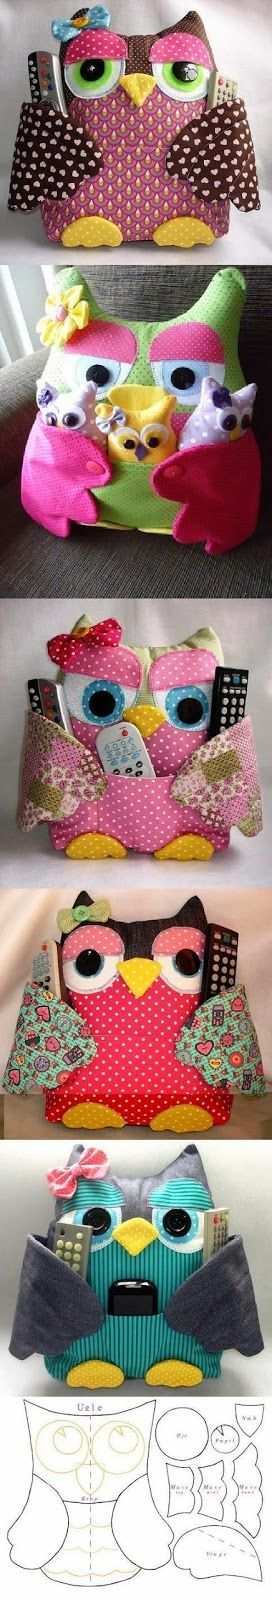 Easy DIY Crafts: DIY Owl Pad with Pockets- I want this for Sadie! Just because it's adorable... Maybe without the heavy eyelids because that's a little much.